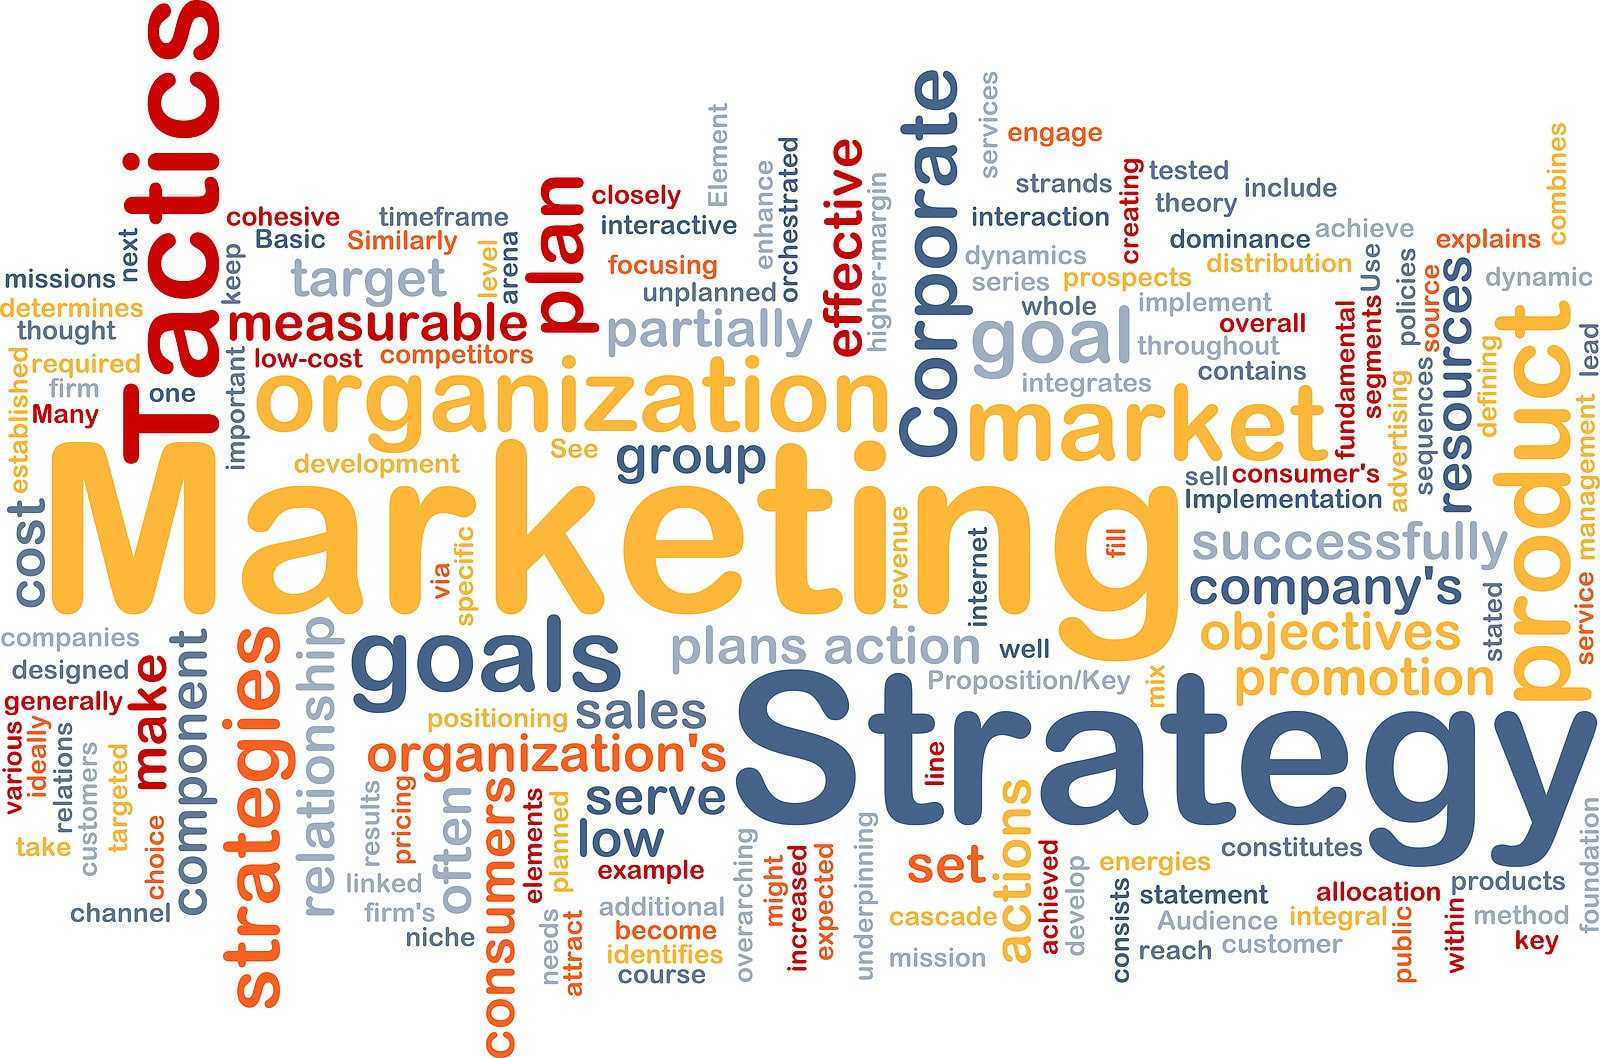 competitors promotion and advertising methods marketing essay Marketing being a philosophy where the resources and activities of the firm or company are focused on satisfying the wants and needs of the customer, marketing research is the way a firm with a marketing phi.